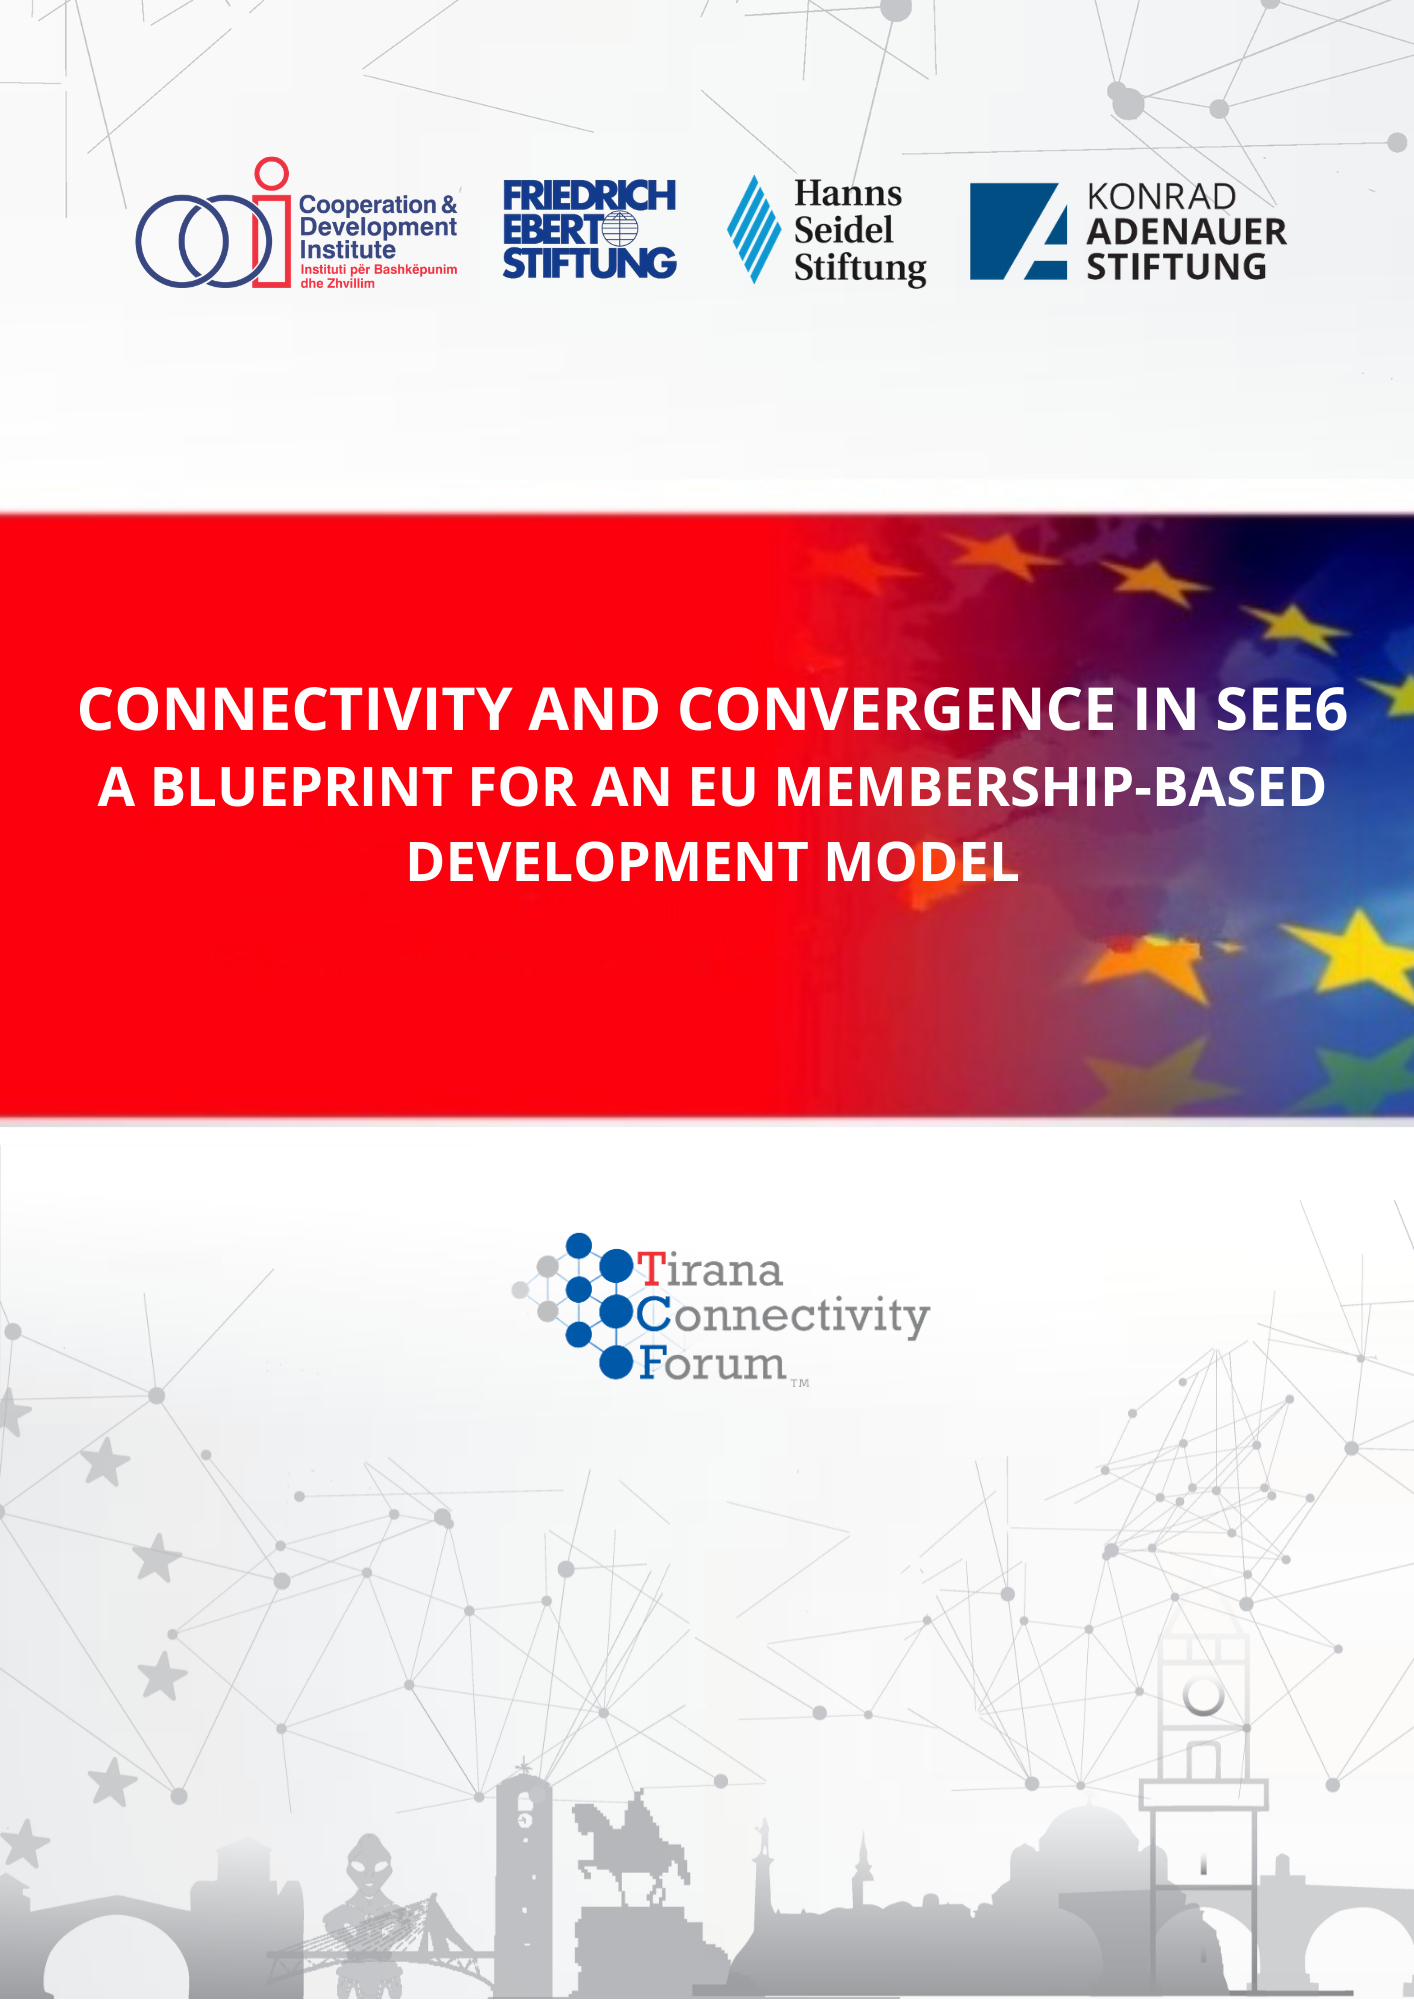 Connectivity and Convergence in SEE6: A Blueprint for an EU Membership-Based Development Model